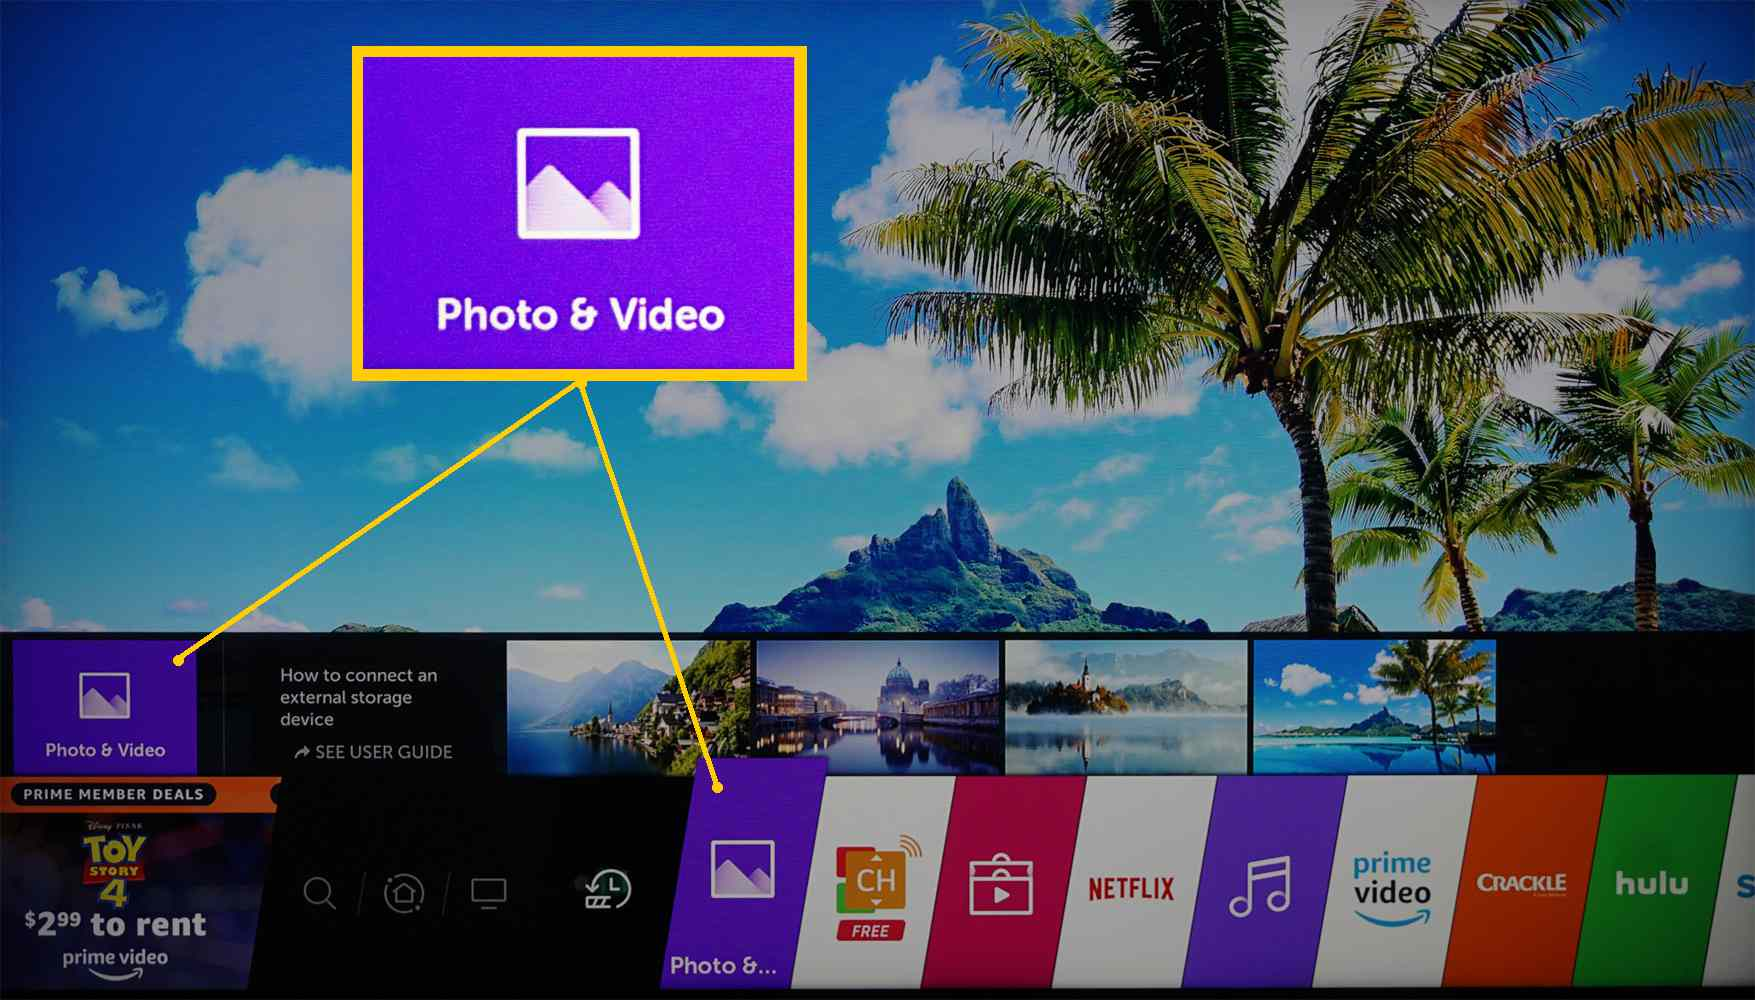 LG 4K Ultra HD TV – Homepage – Photos/Video Category Spotlighted